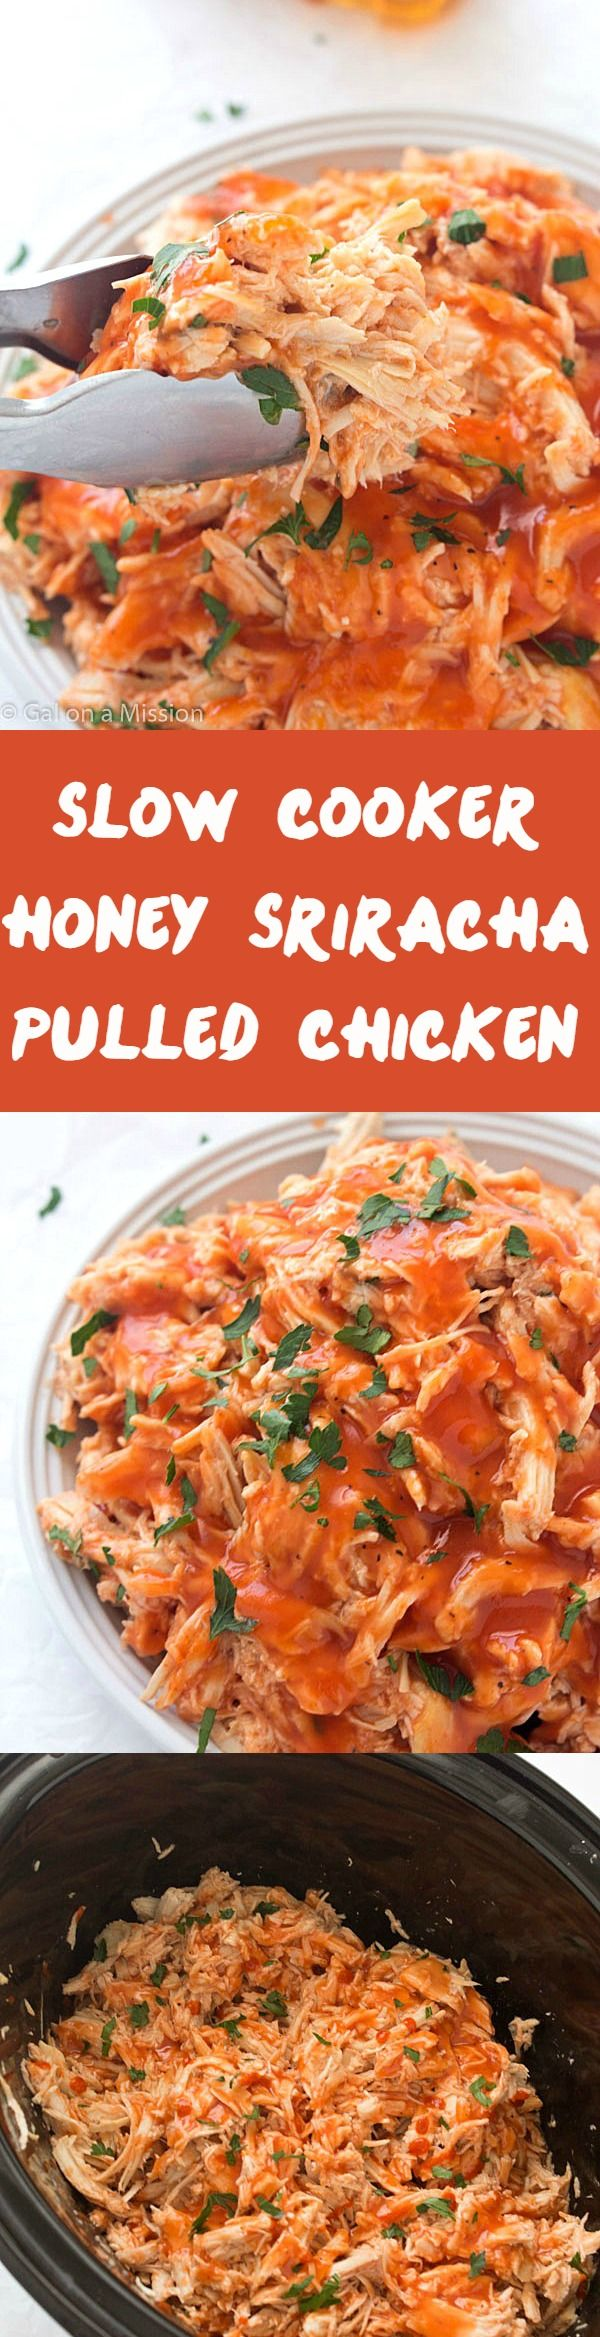 Slow Cooker Honey Sriracha Pulled Chicken - Moist and tender with a crazy delicious sauce! Perfect if you love honey sriracha wings - the flavor is almost identical! Makes the perfect pulled chicken sandwich and pulled chicken tacos!